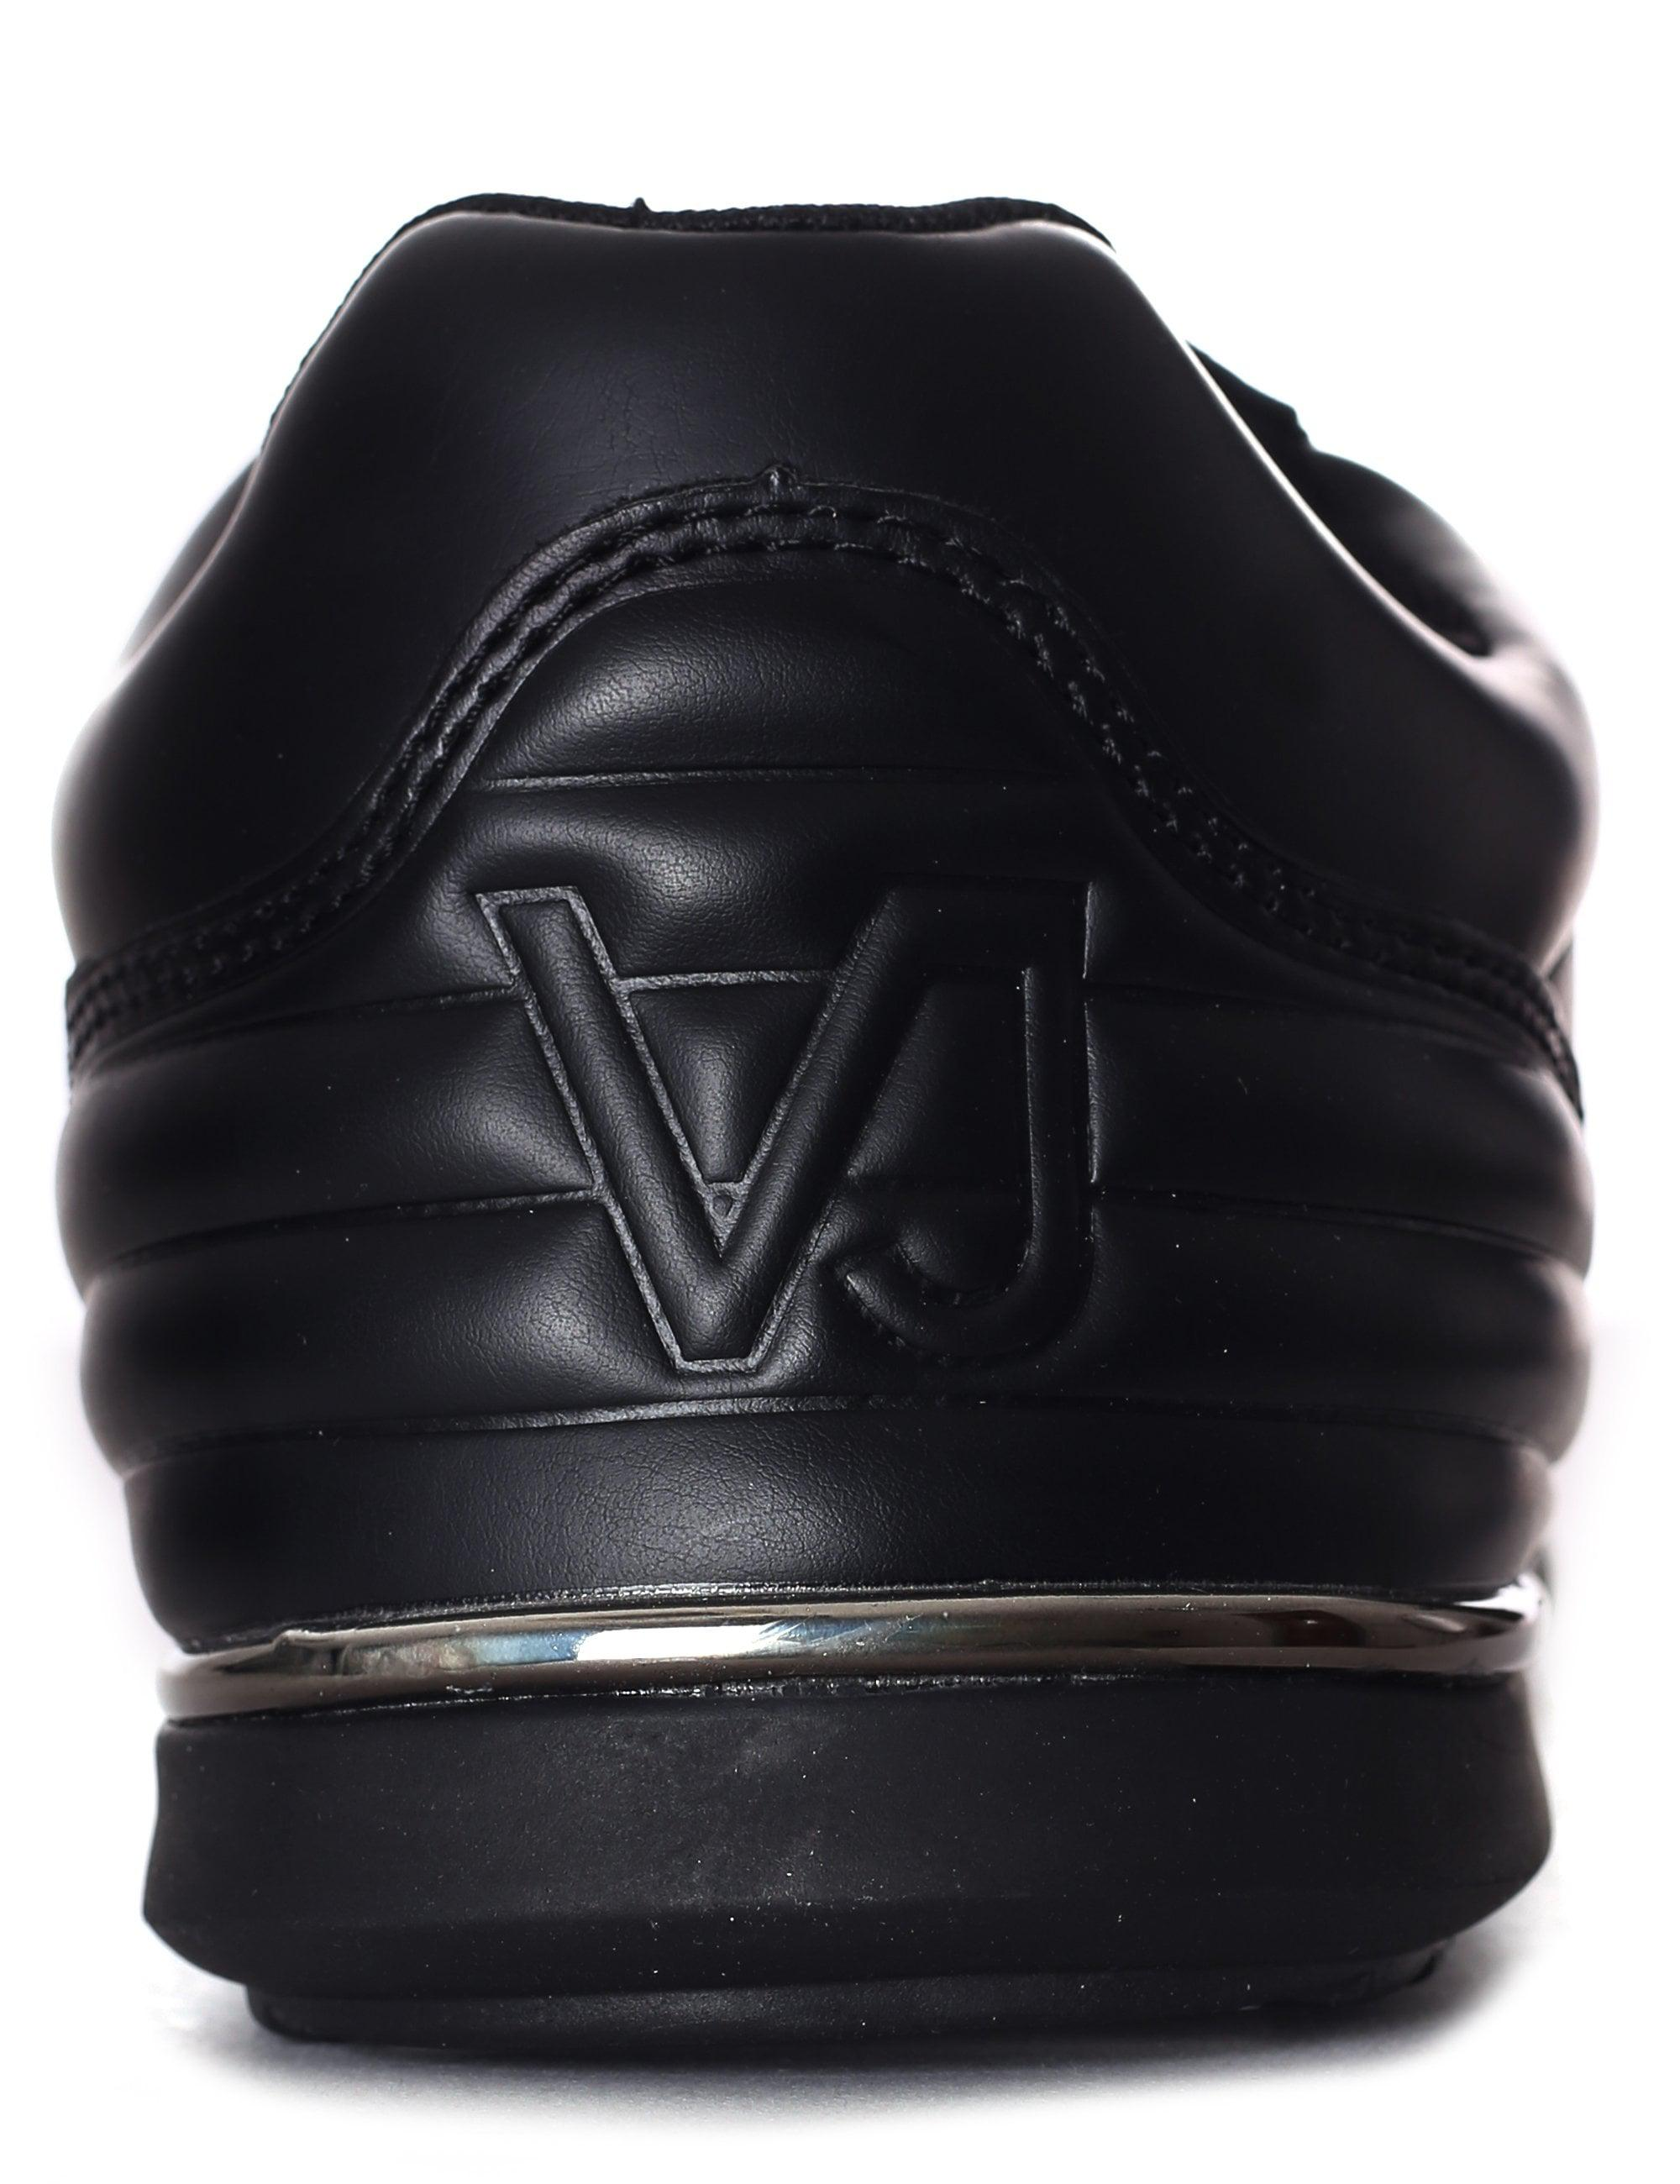 2be13d96ae9 Versace Jeans Coated Suede Trainer in Black for Men - Lyst